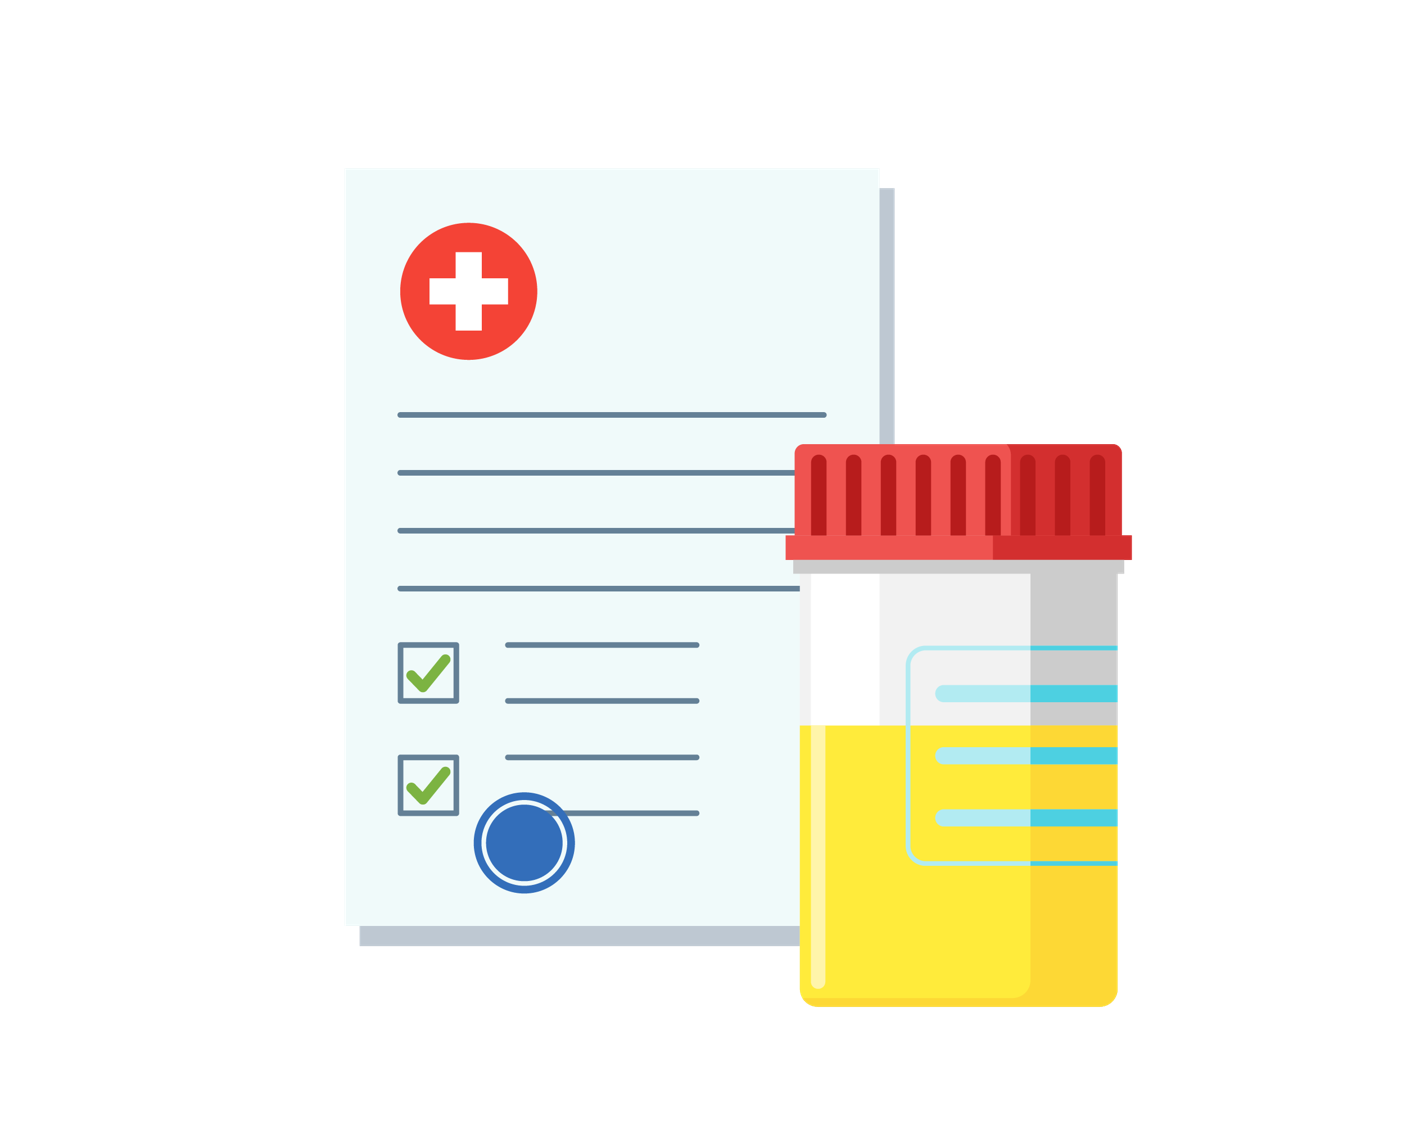 Icon of urine sample and form